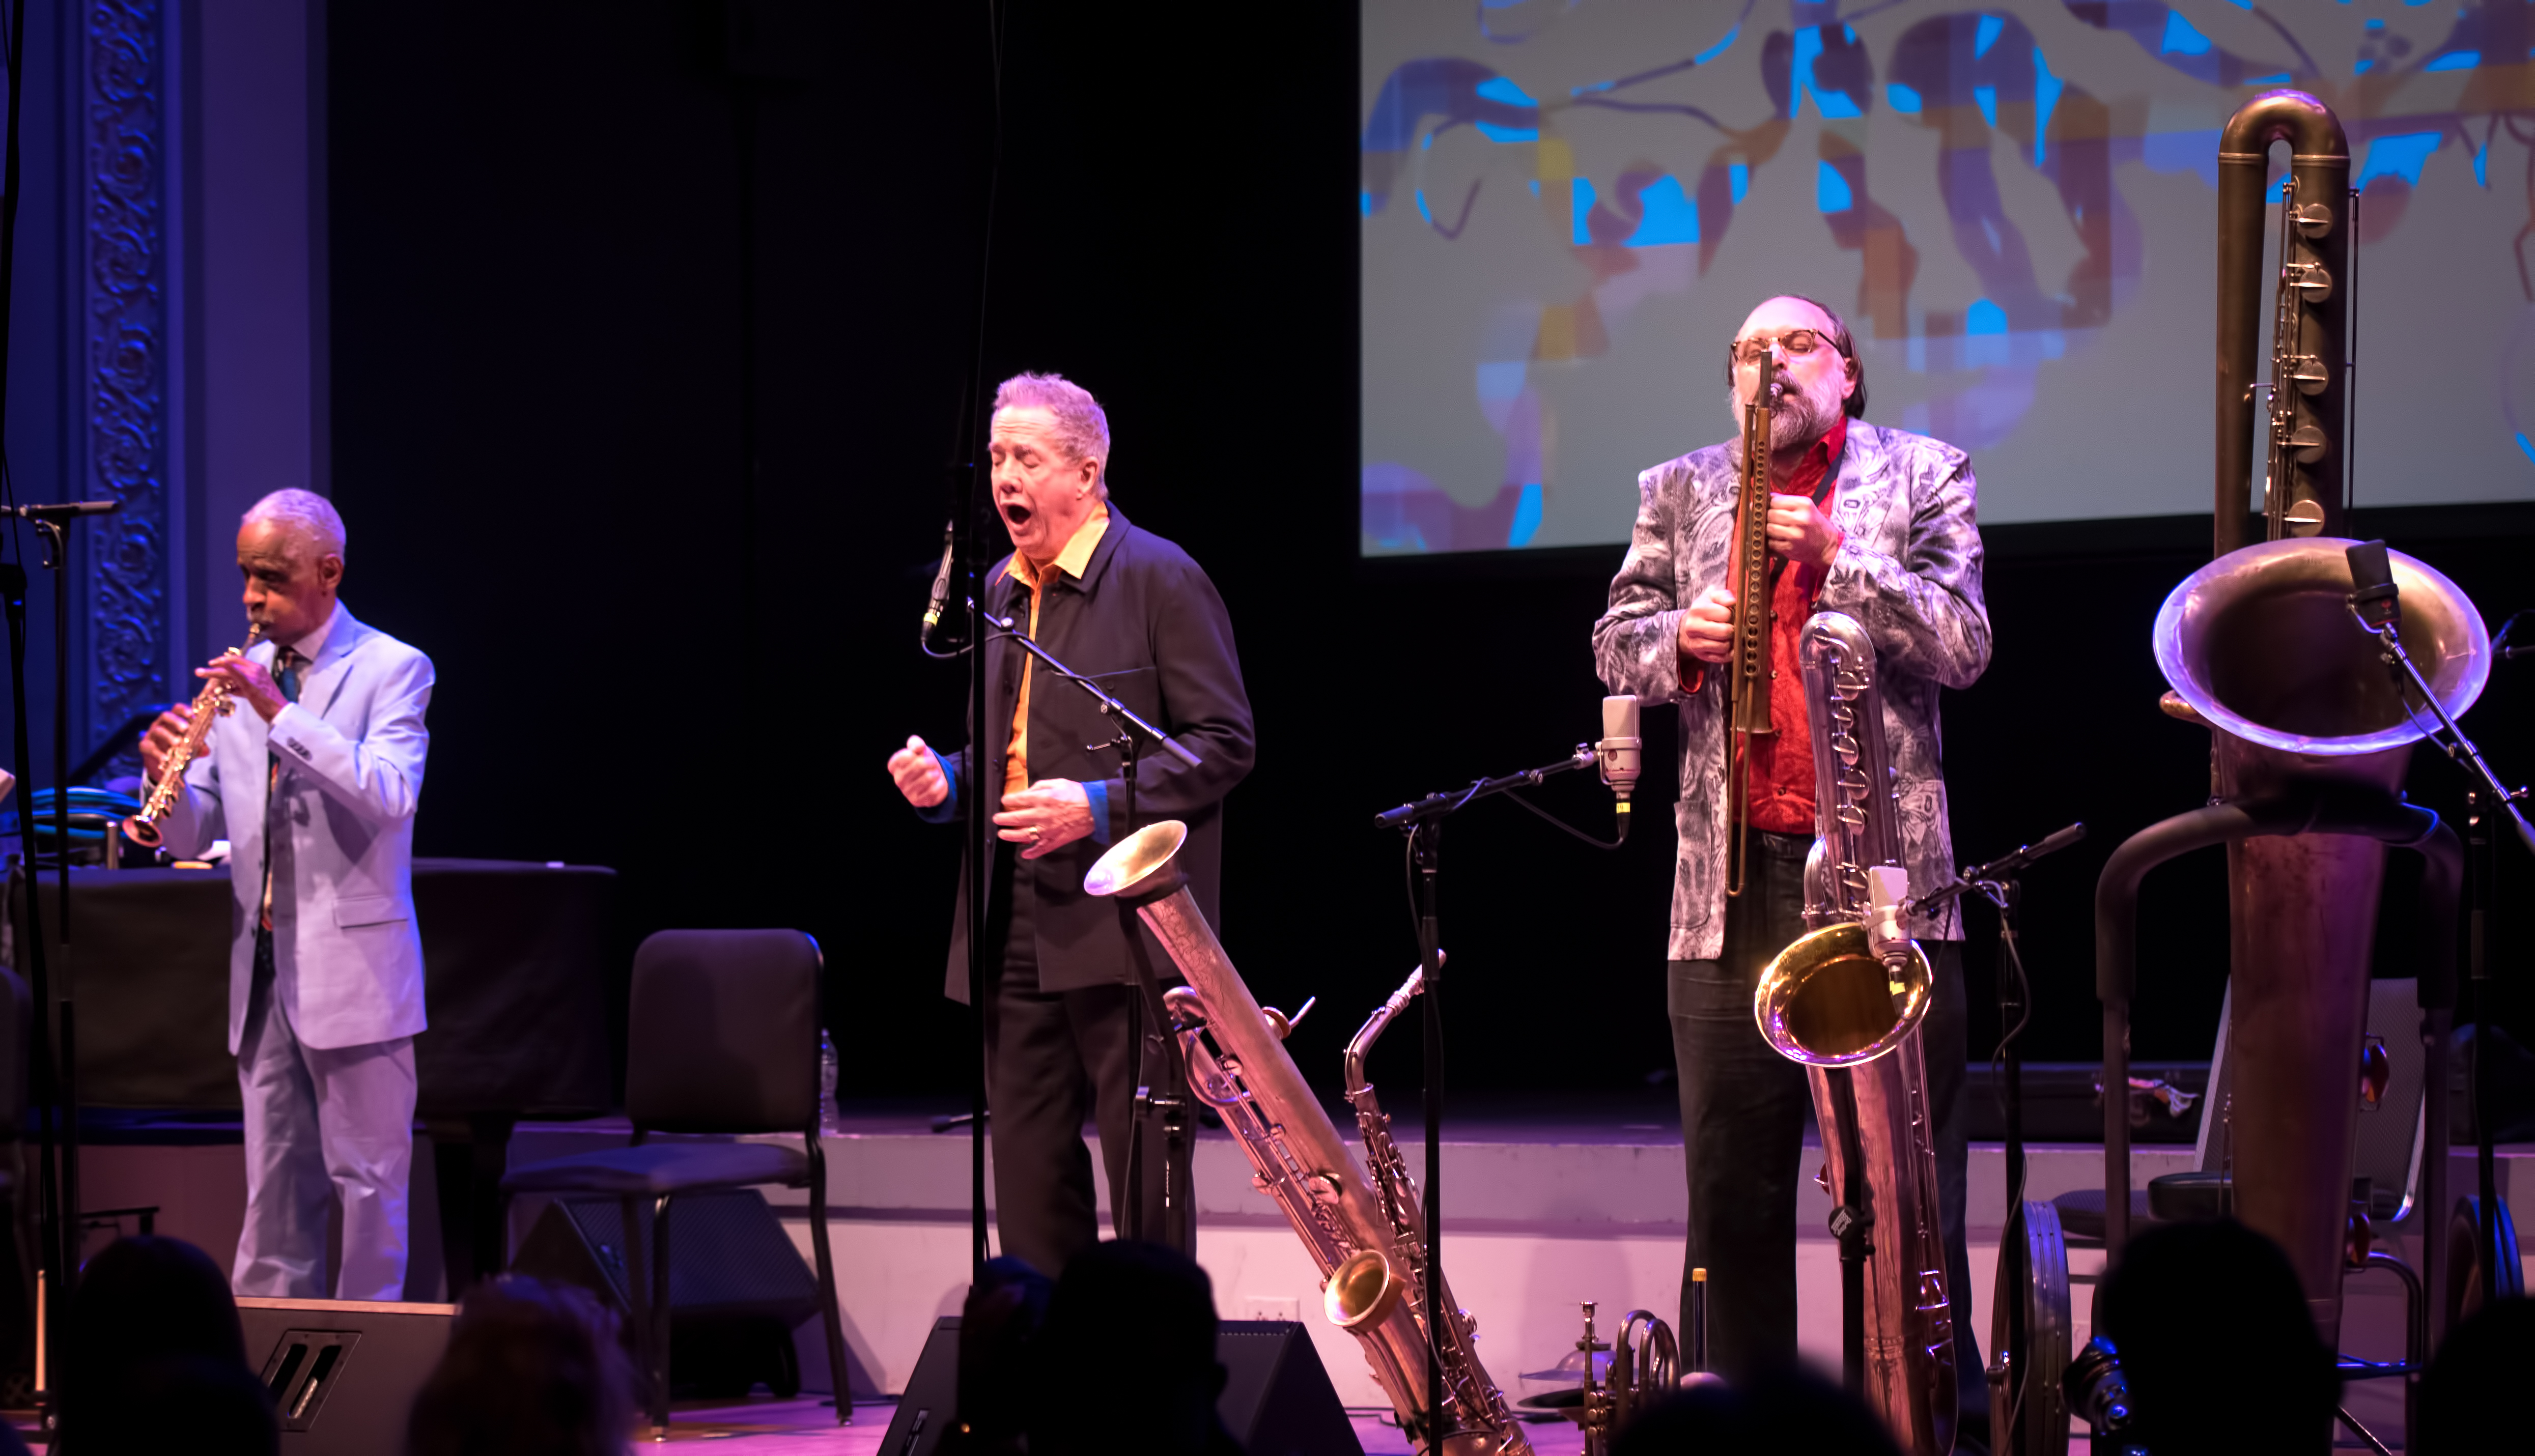 Roscoe Mitchell, Thomas Buckner and Scott Robinson with the Space Trio At the Vision Festival 2018